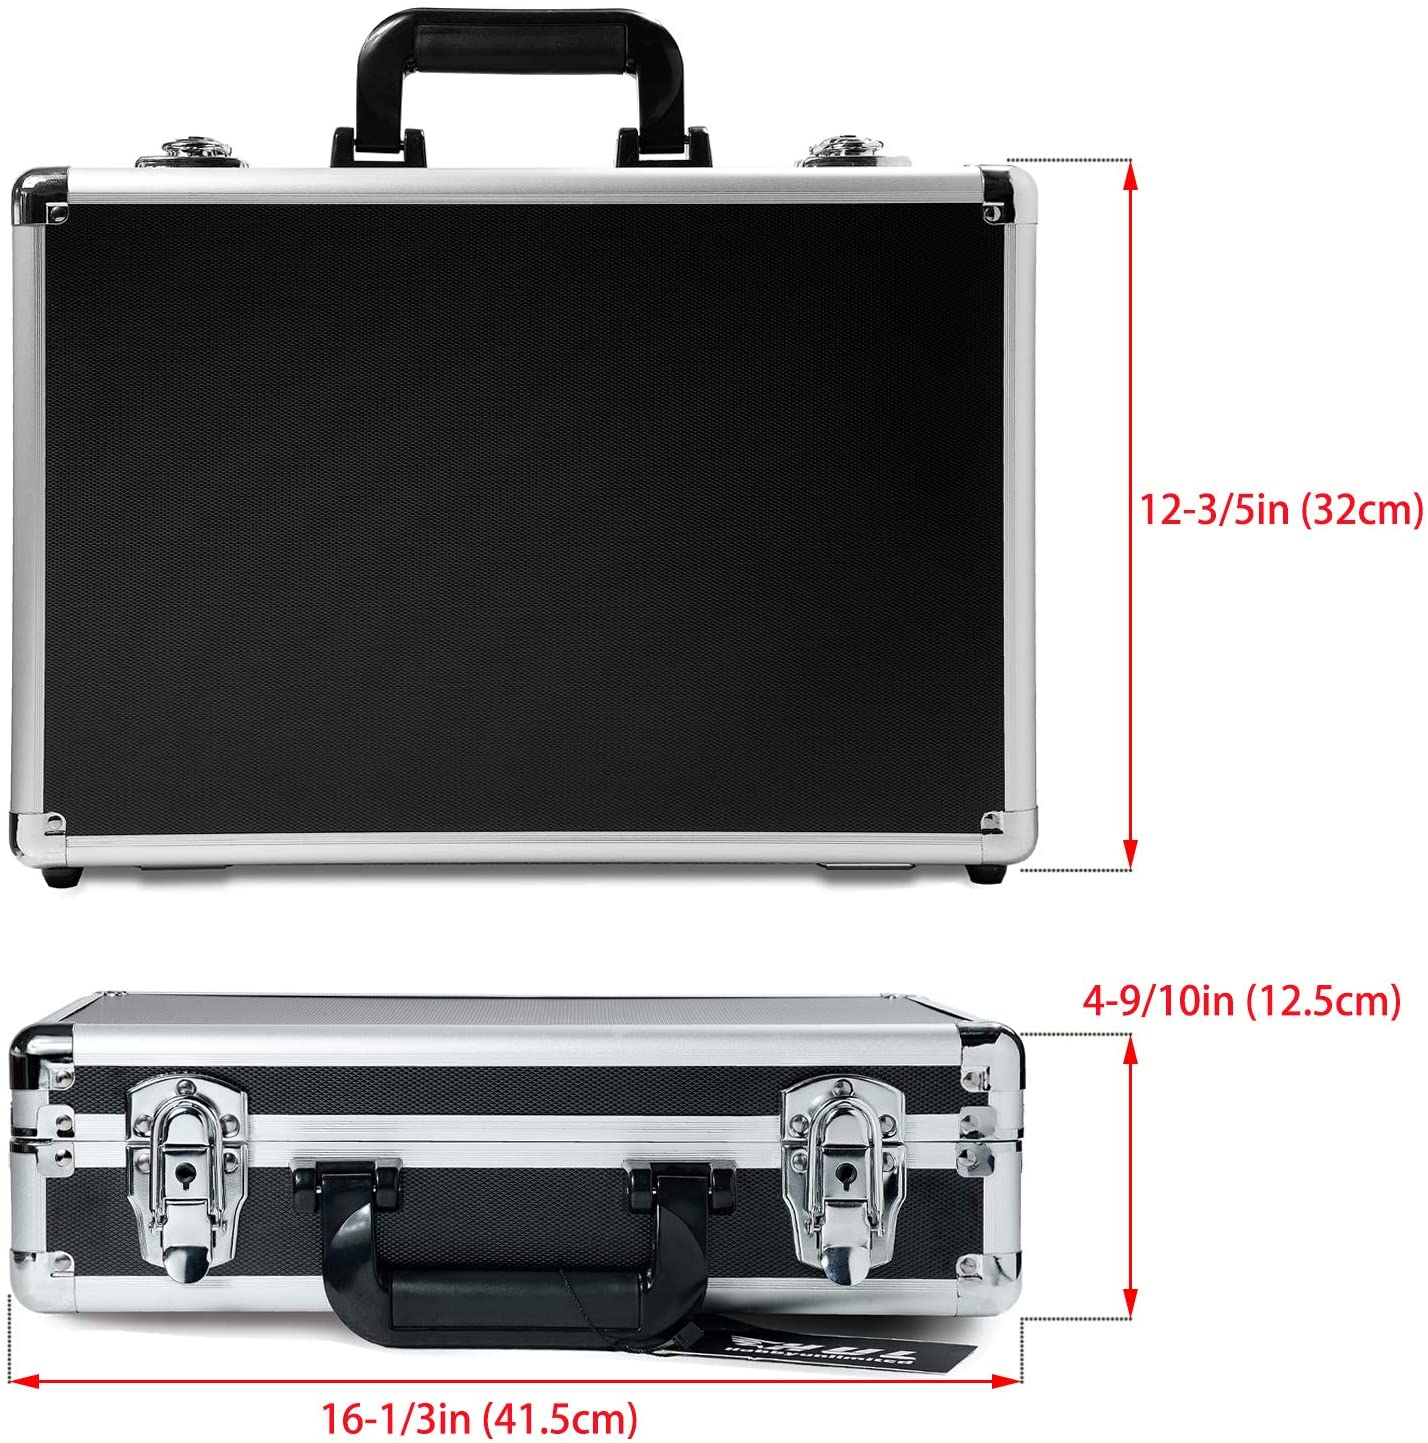 HUL 18in Two-Tone Aluminum Case with Customizable Pluck Foam Interior for Test Instruments Cameras Tools Parts and Accessories